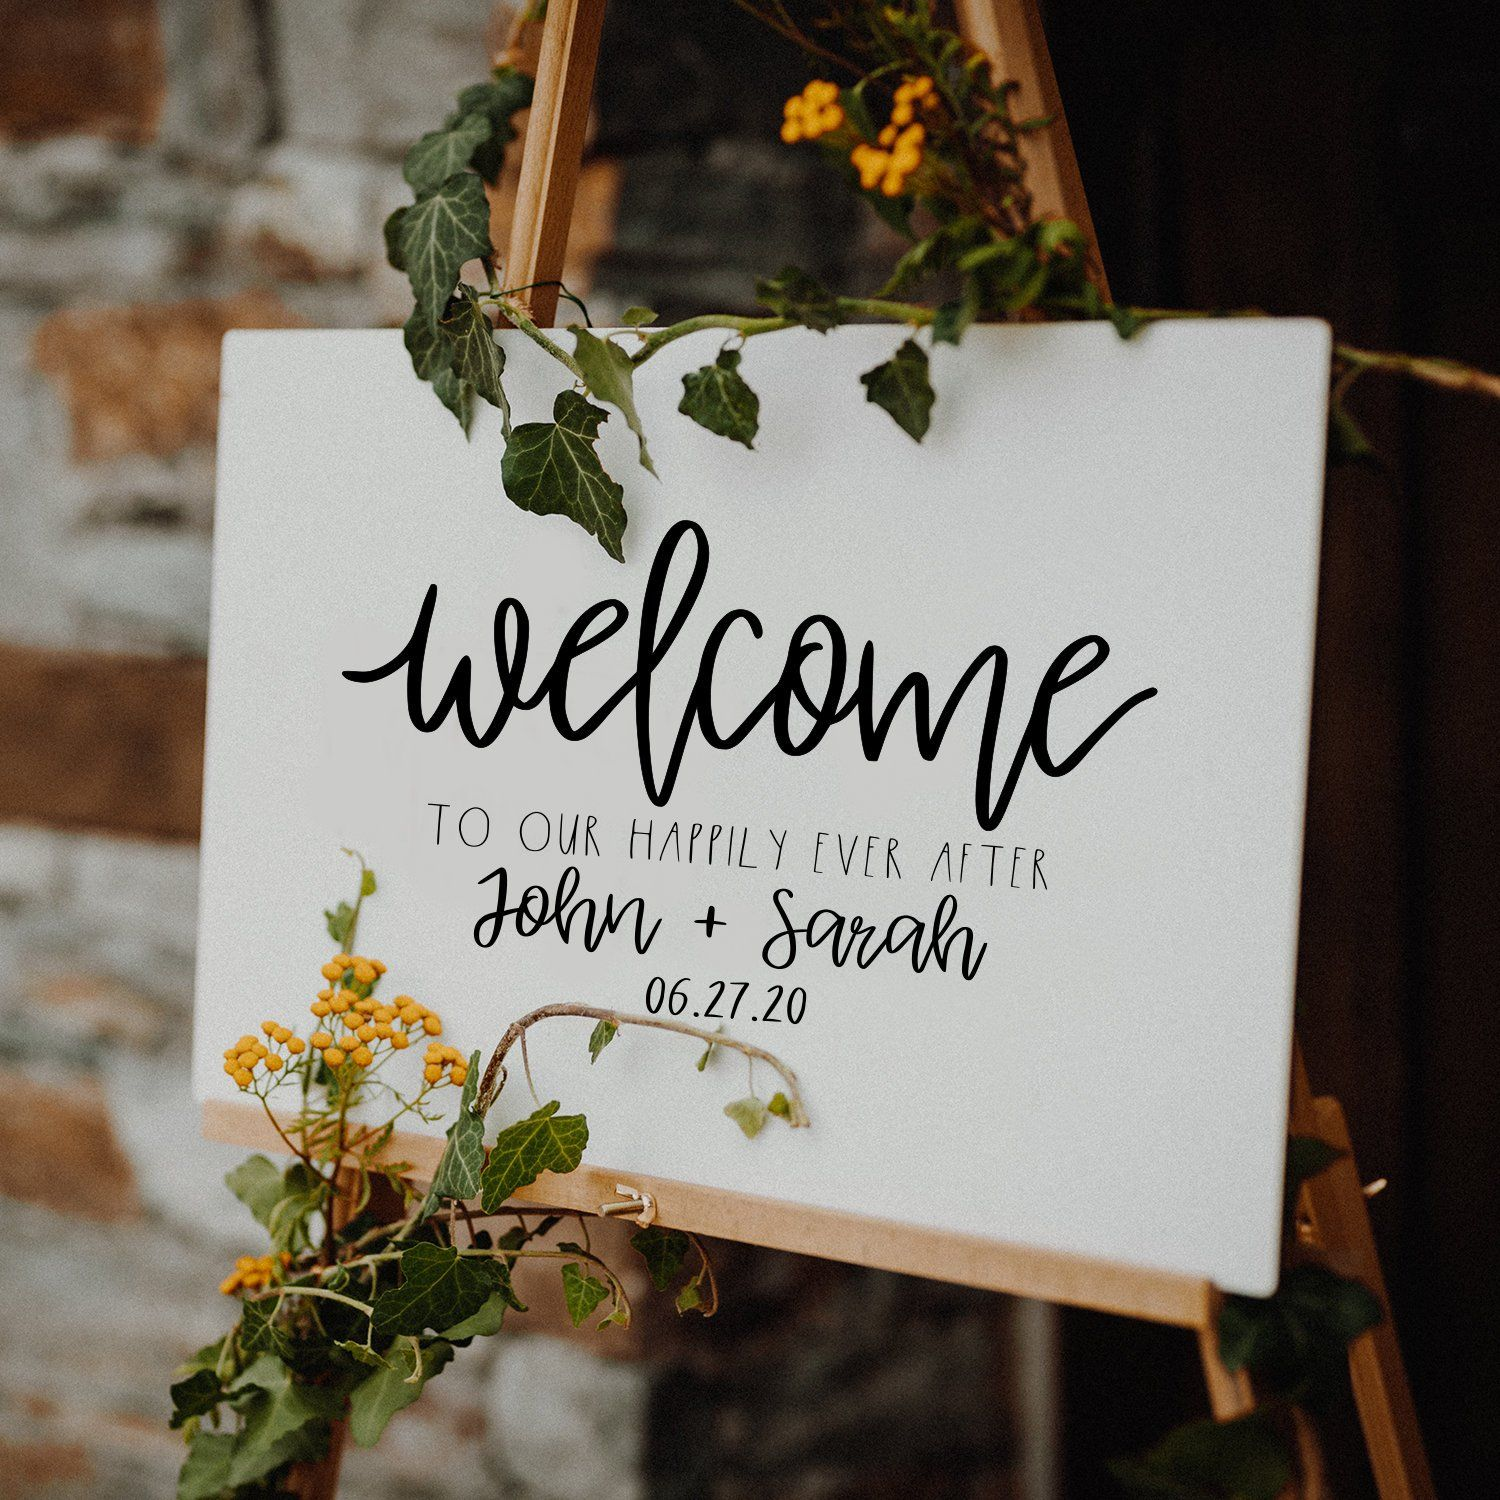 Low Budget Wedding Decorations: Personalized Rustic Welcome To The Wedding Of Sign Decal